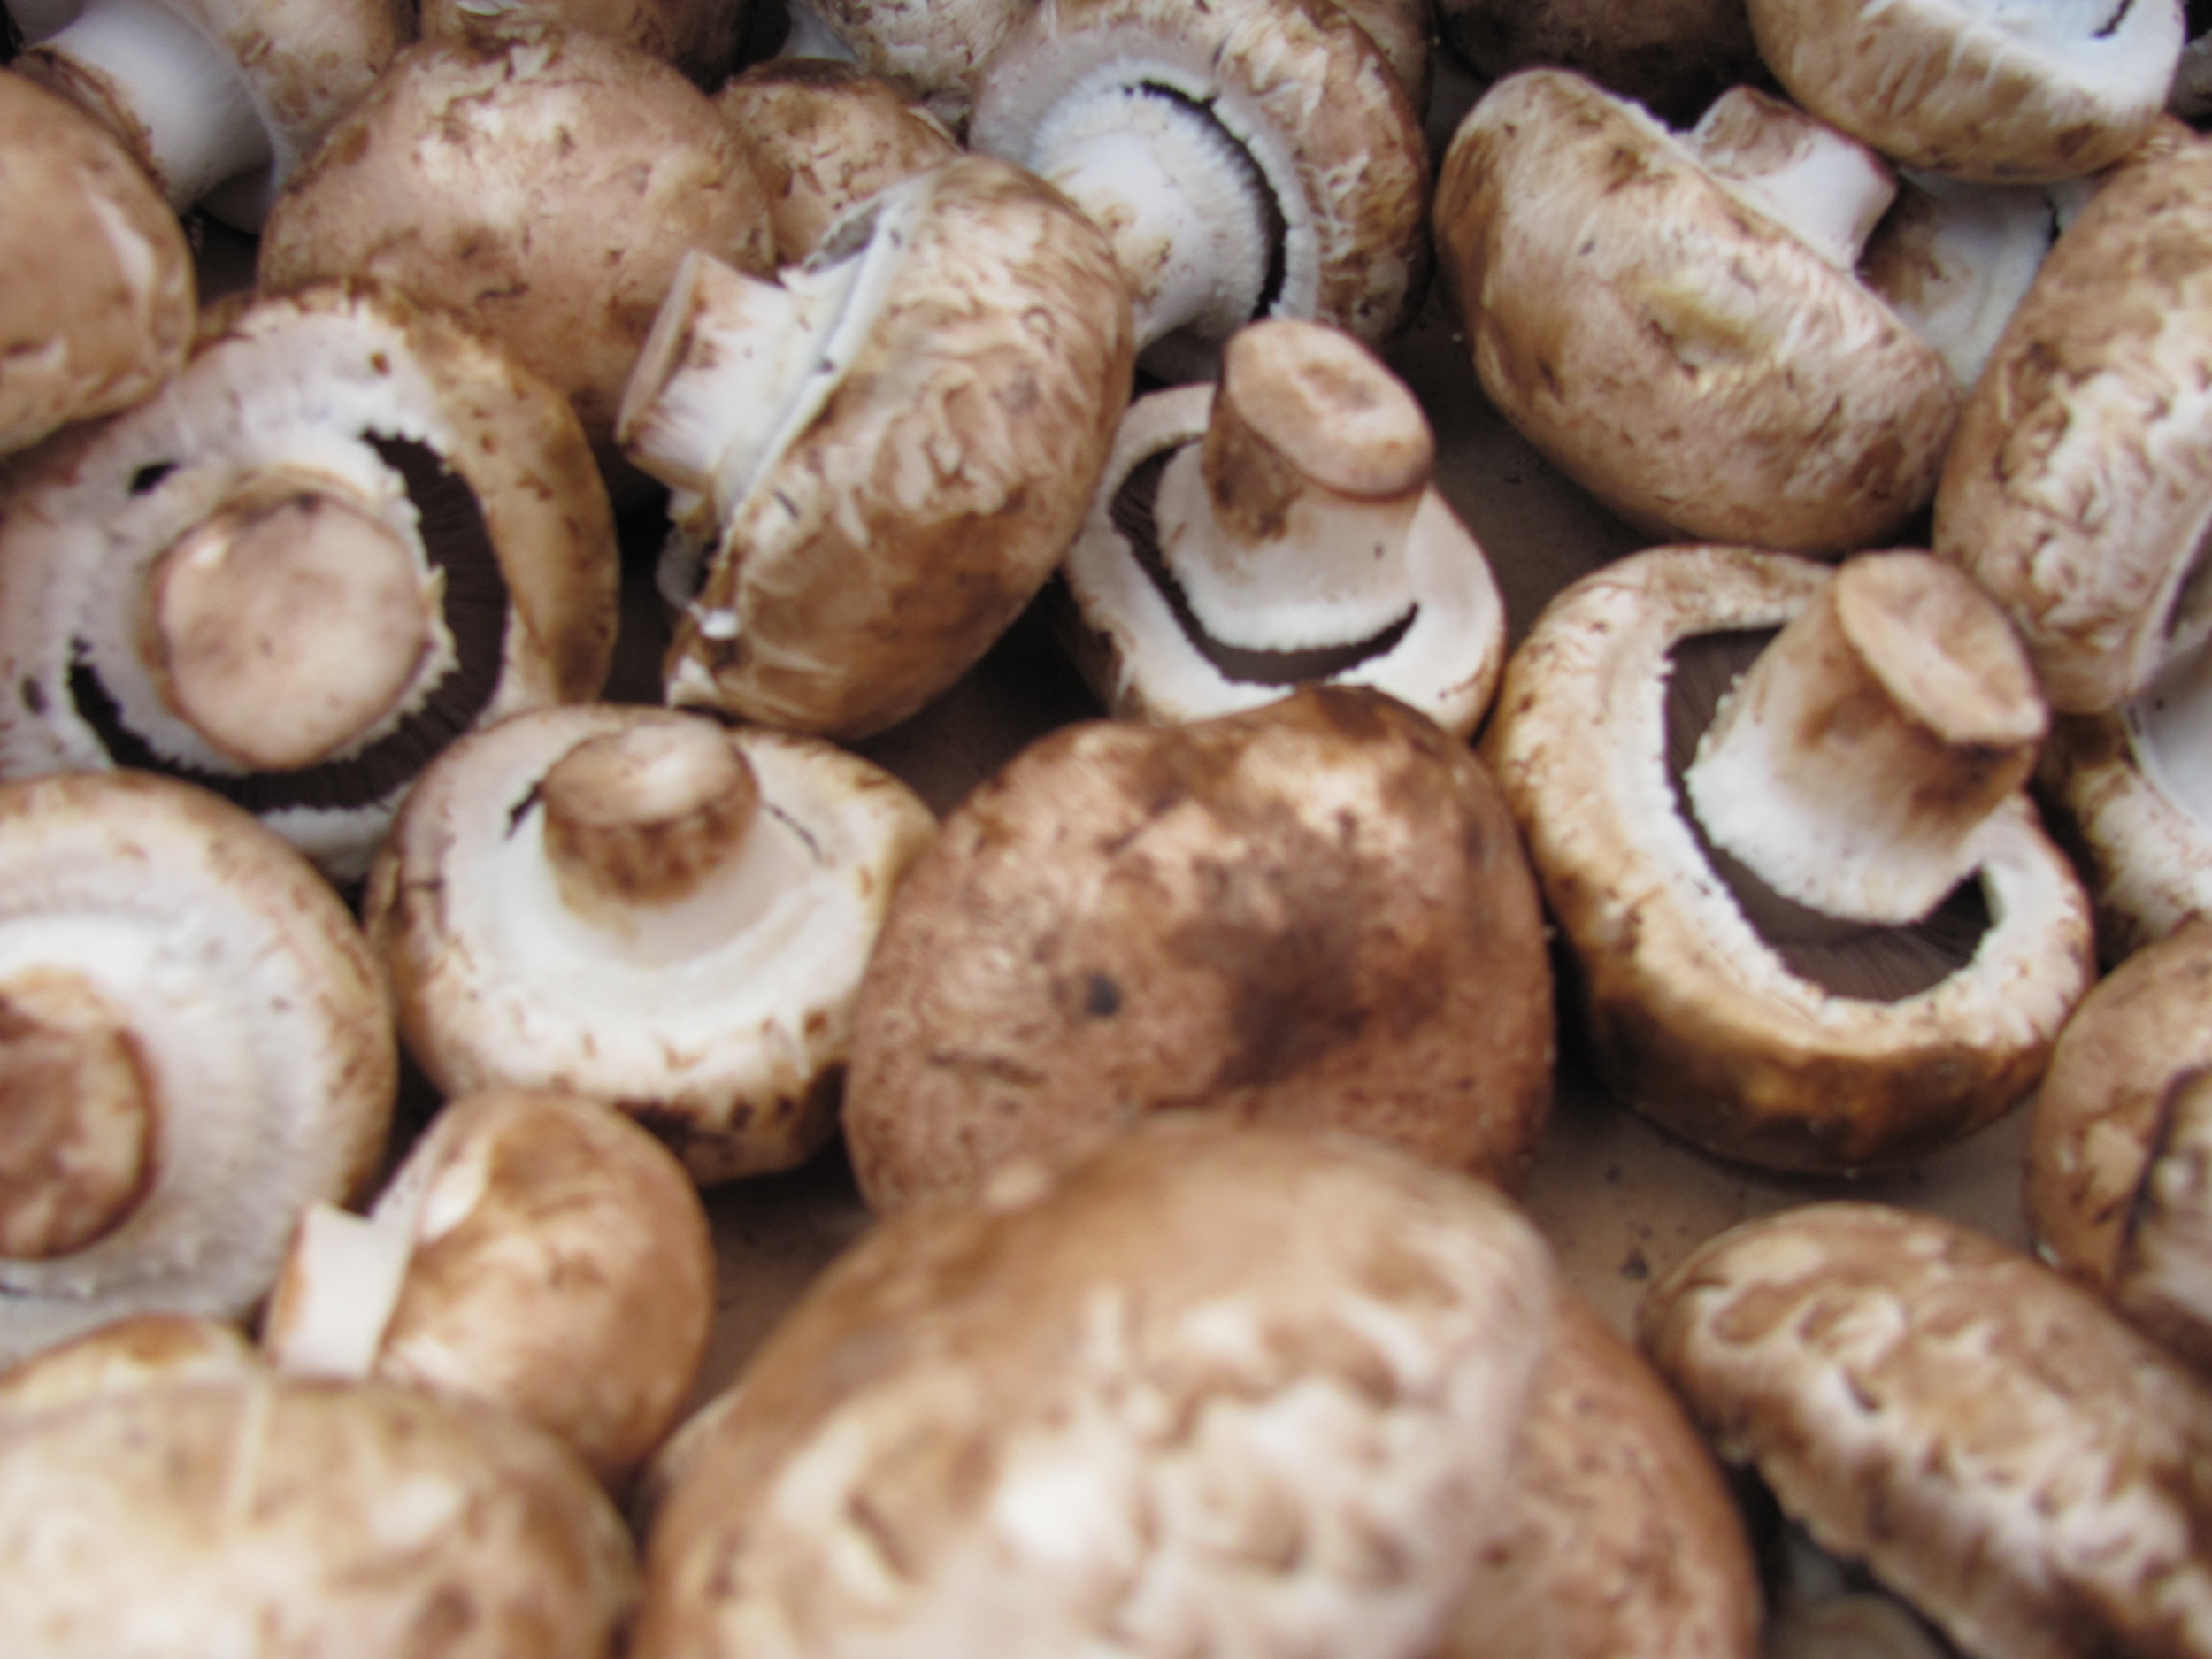 Saratoga Farmers Market mushrooms